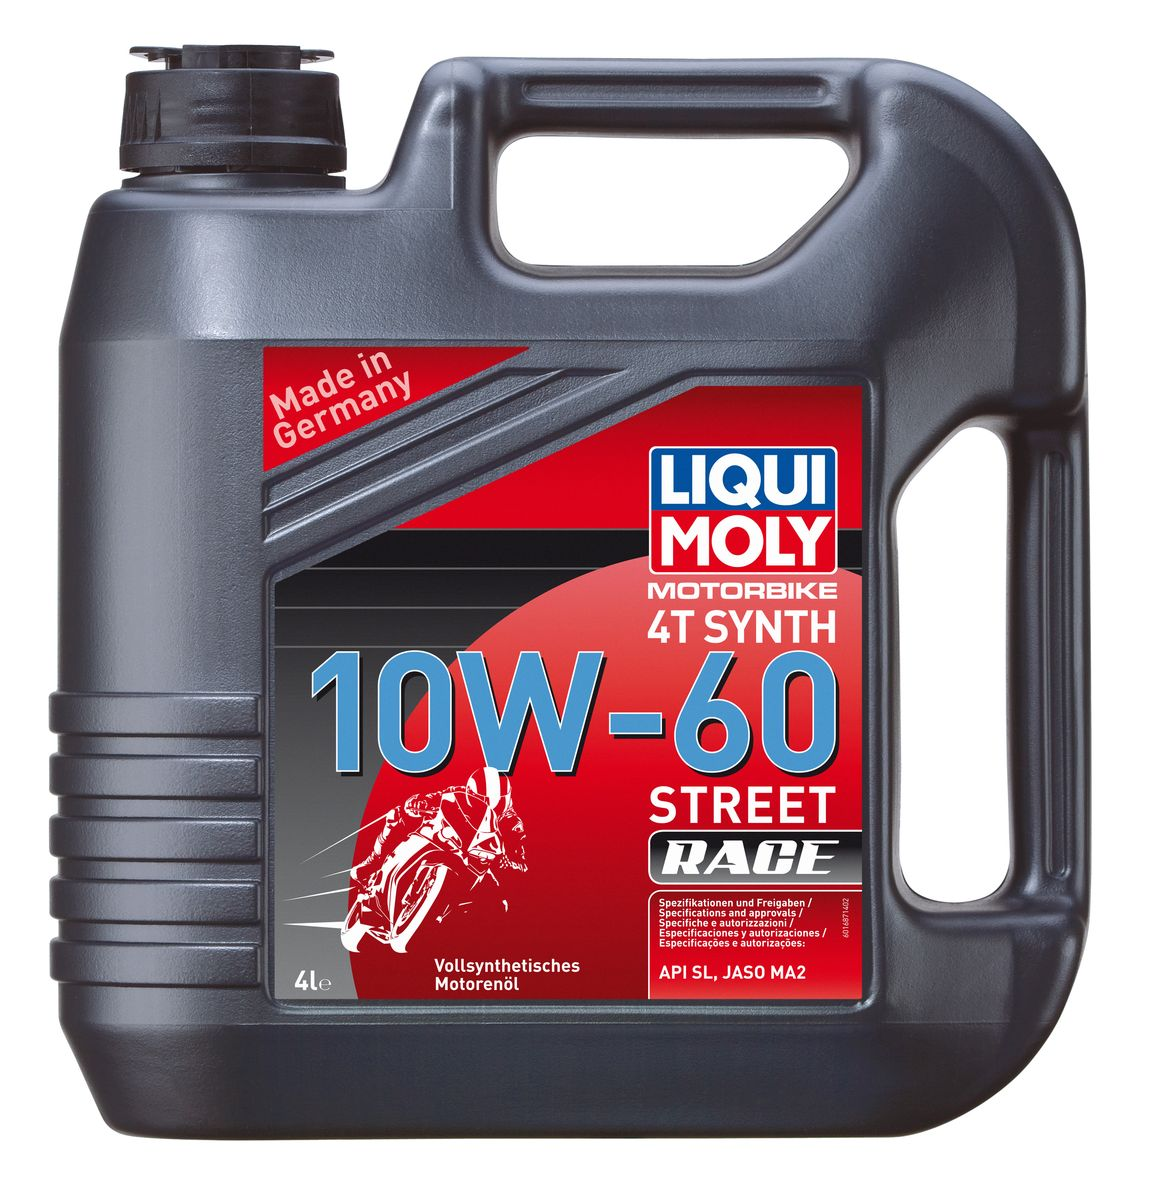 Масло моторное Liqui Moly Motorbike 4T Synth Street Race, синтетическое, 10W-60, 4 л масло моторное liqui moly motorbike 4t street нс синтетическое 10w 30 4 л